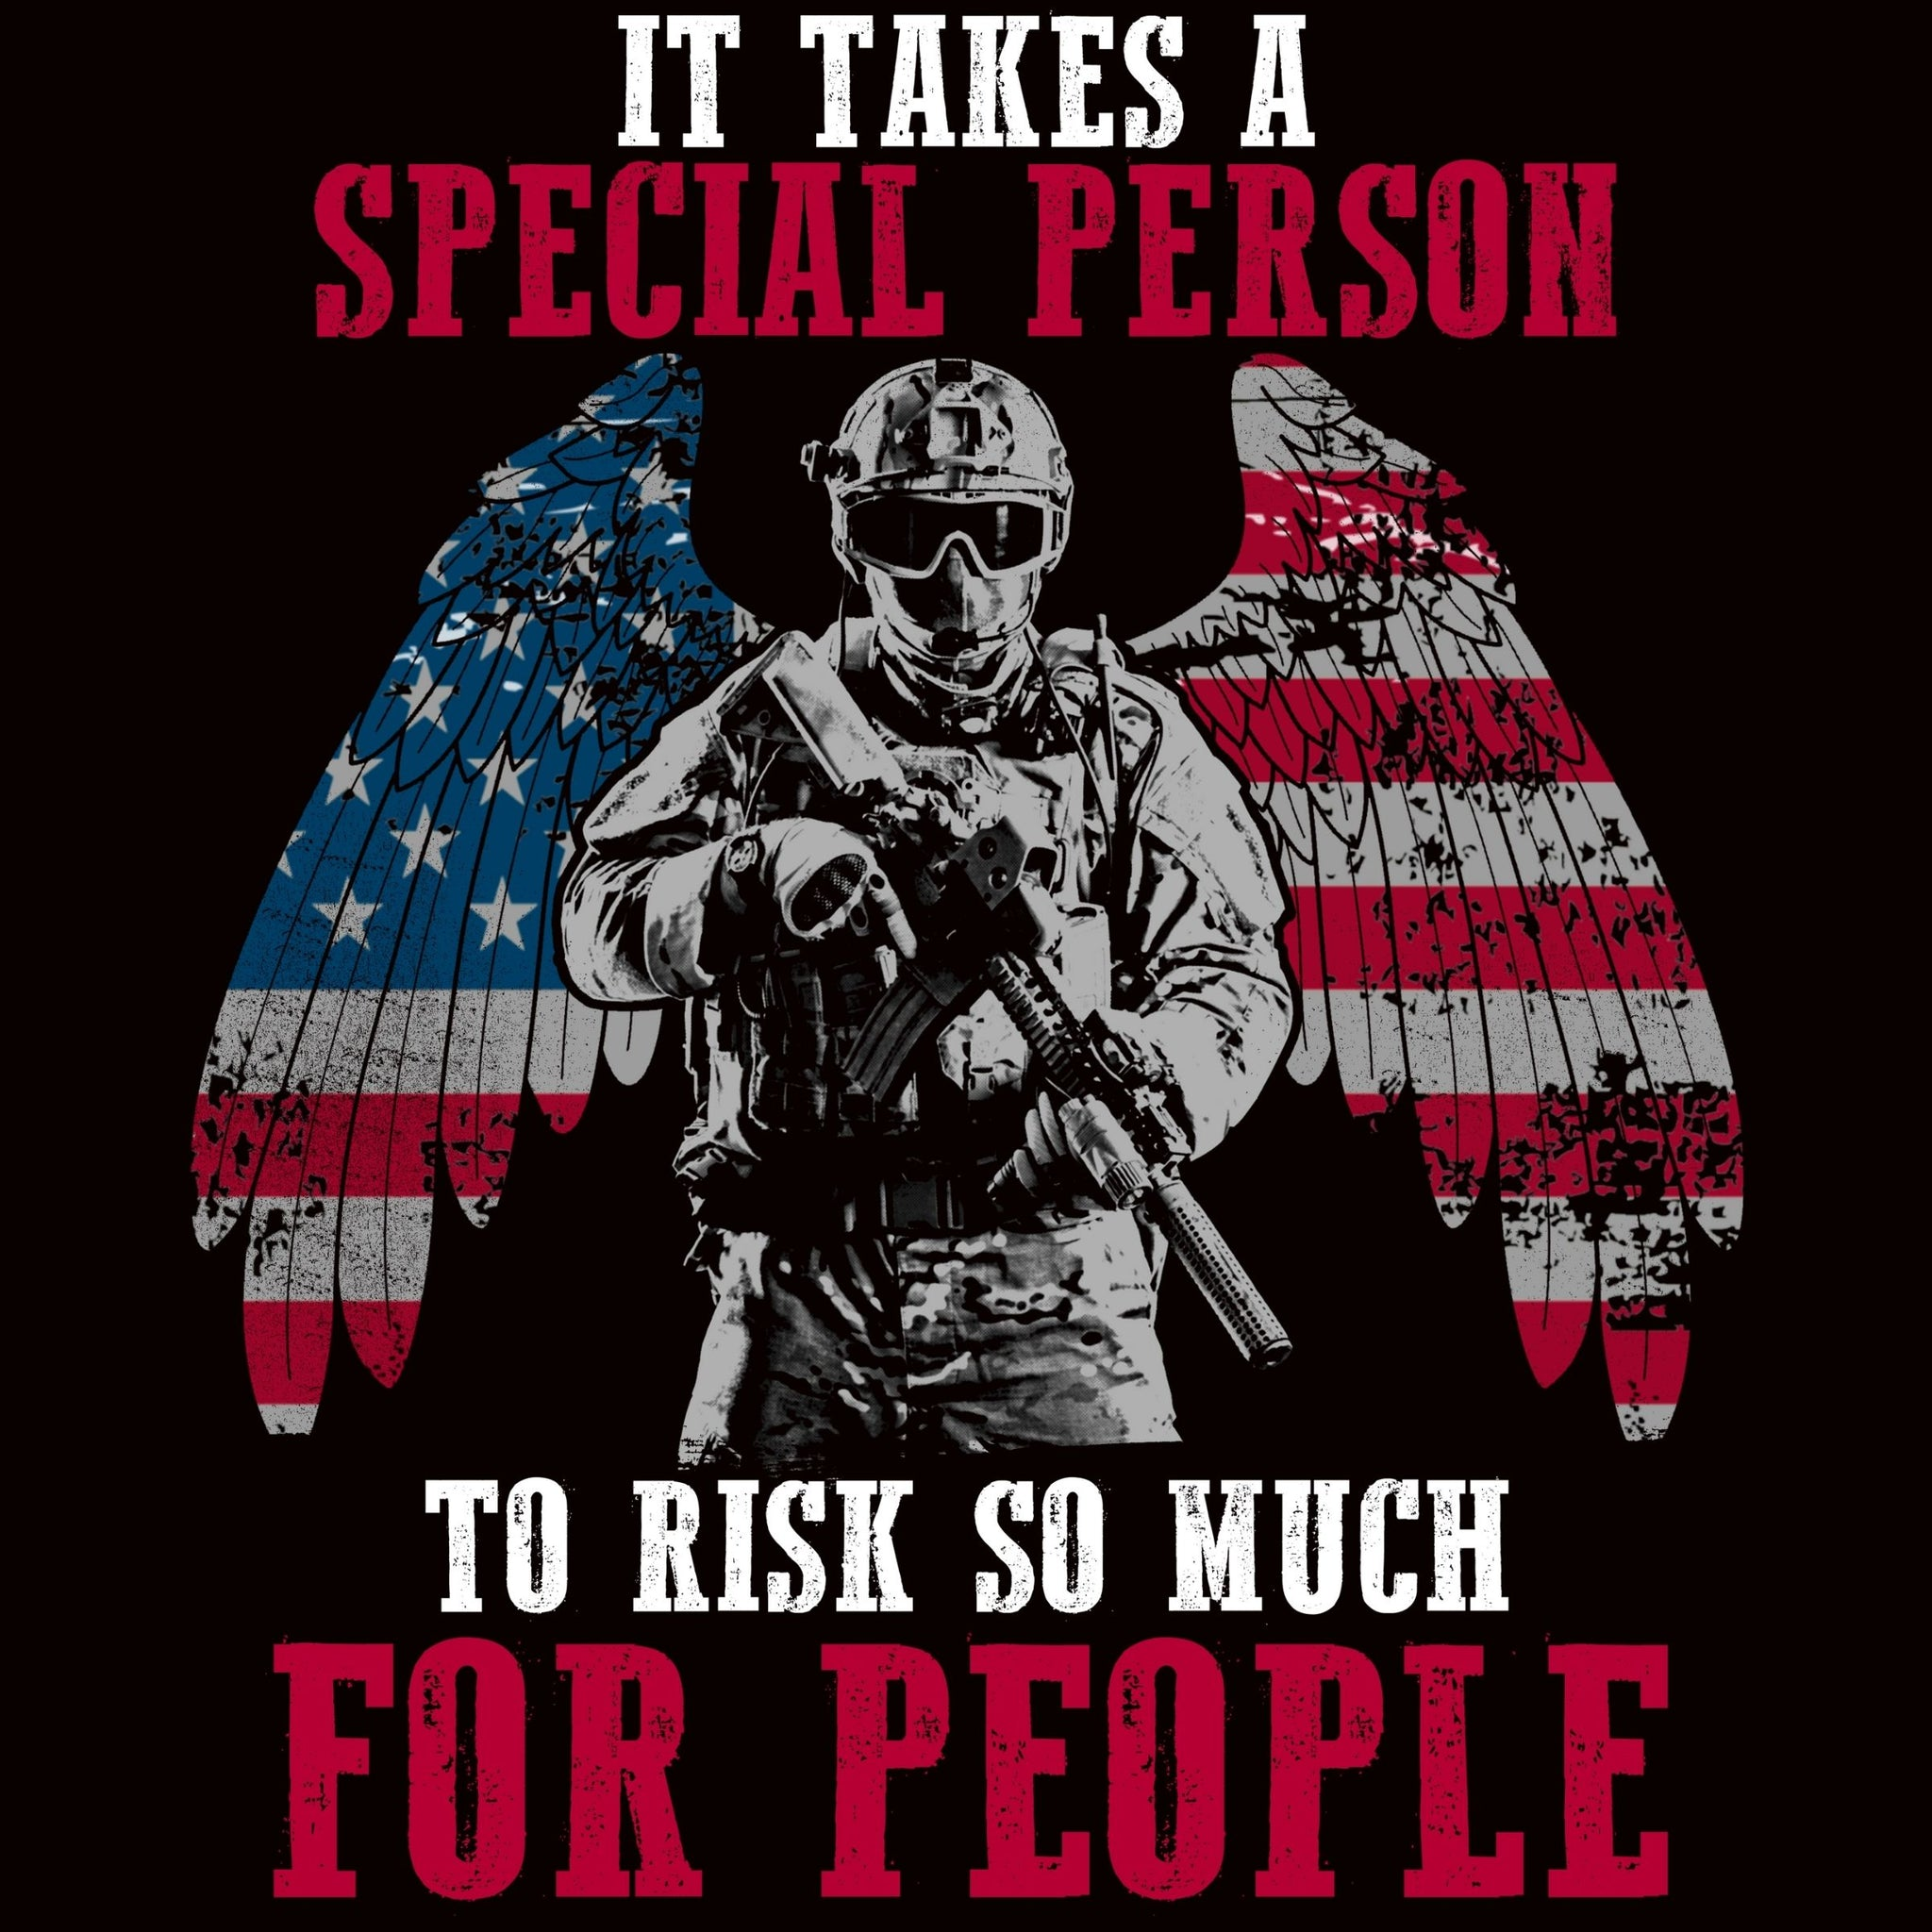 It Takes A Special Person To Risk So Much For People - Bastard Graphics